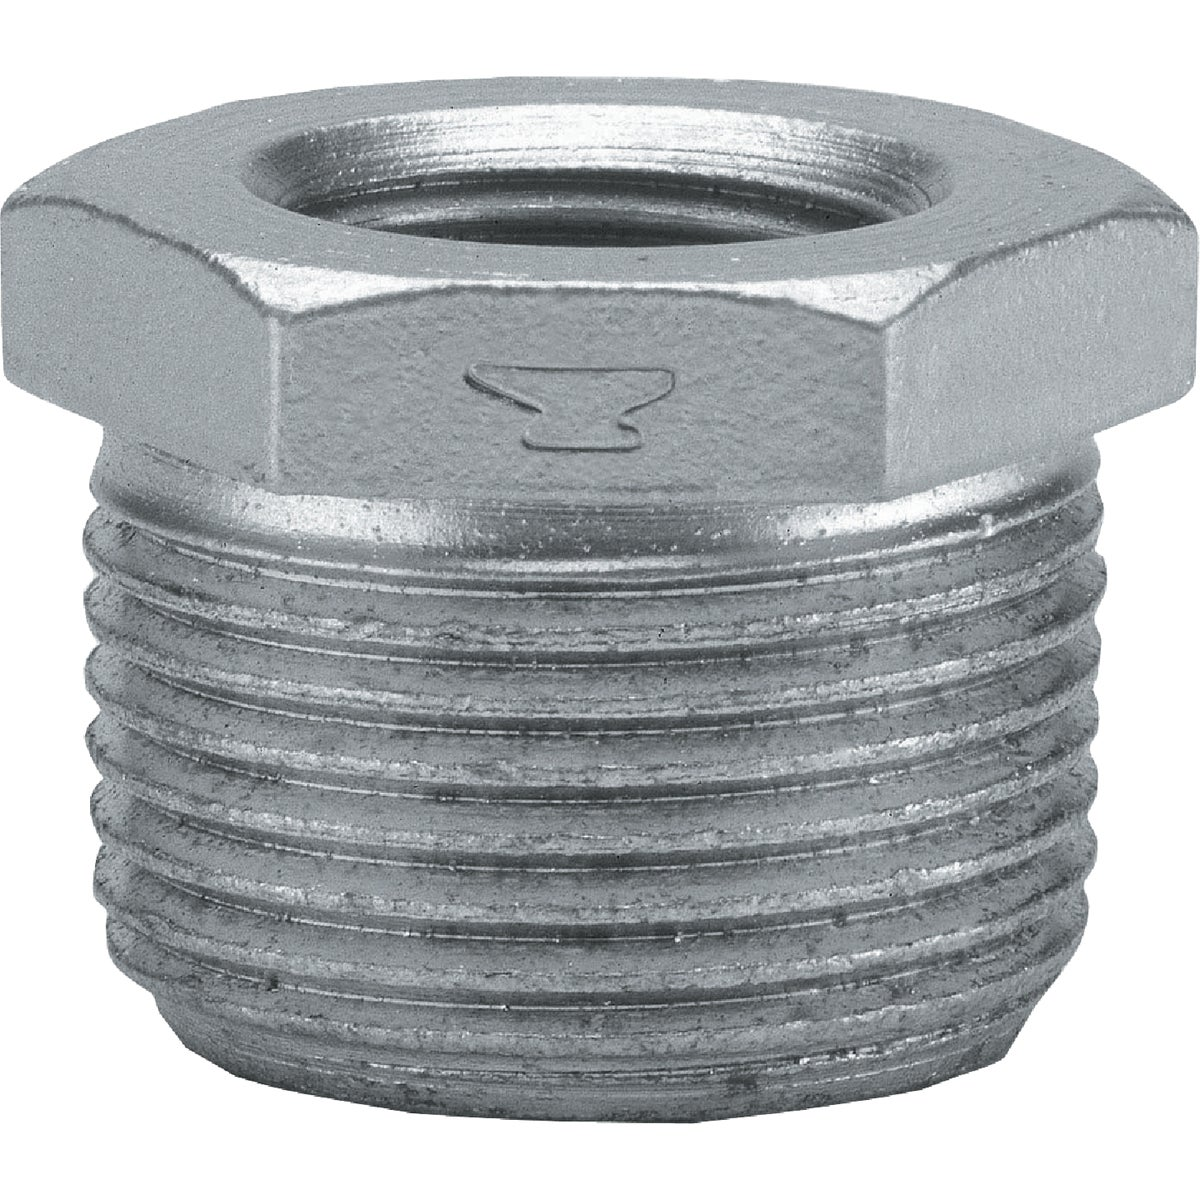 1X1/4 GALV BUSHING - 8700130746 by Anvil International